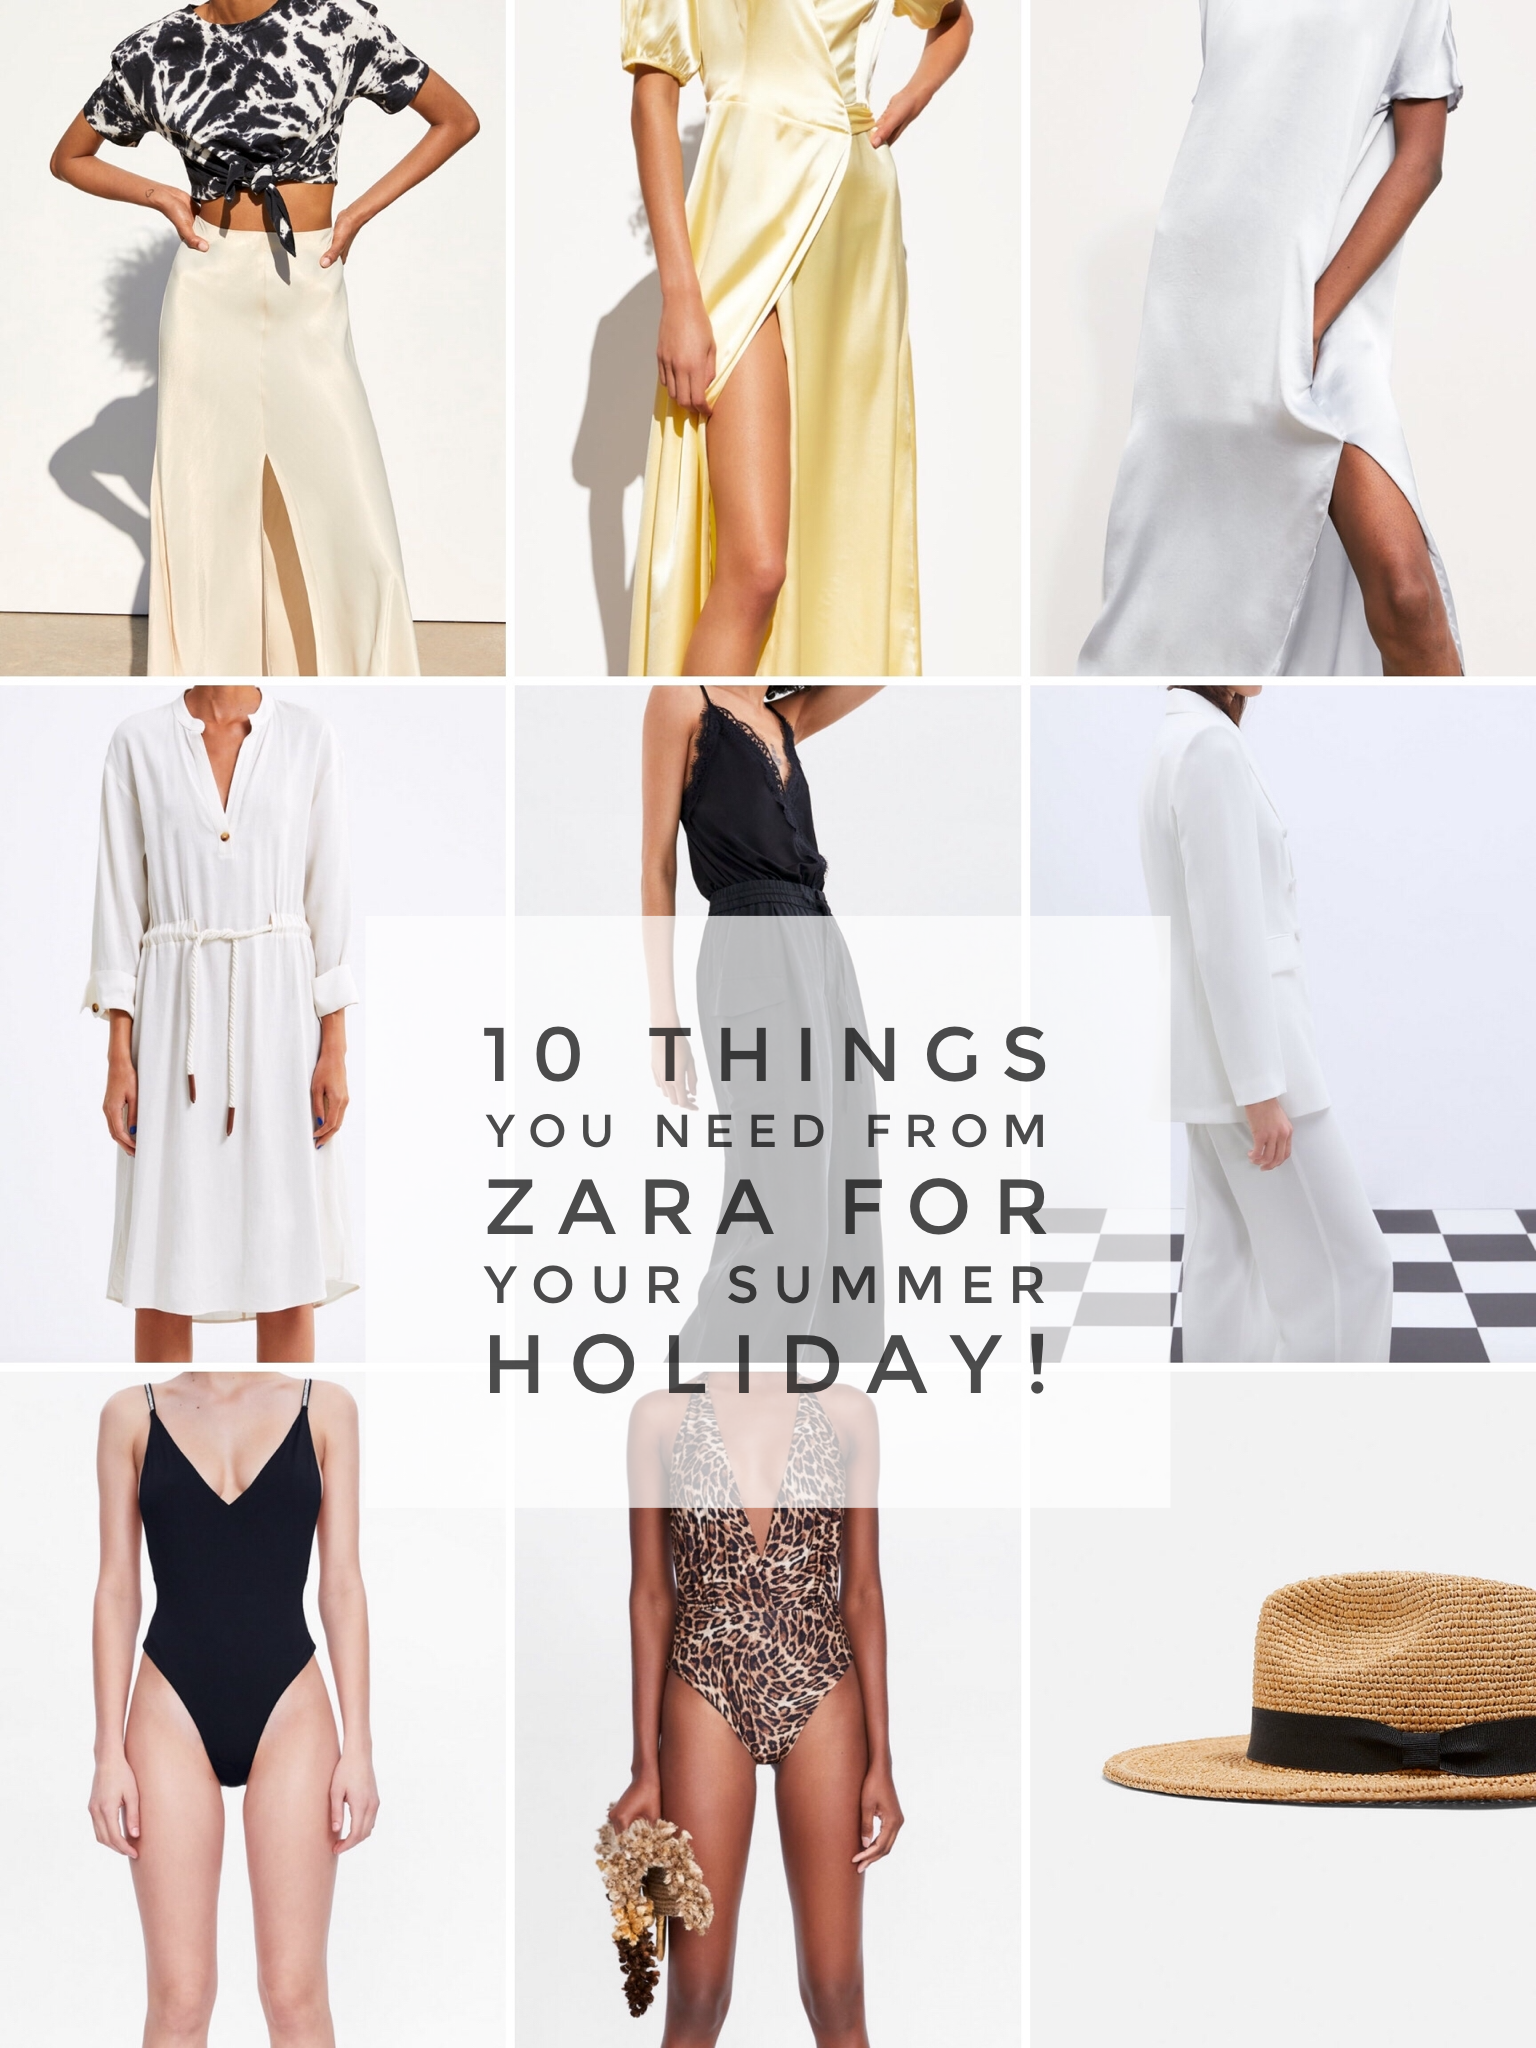 10 Things You Need From Zara for Your Summer Holiday-Before They Sell Out!